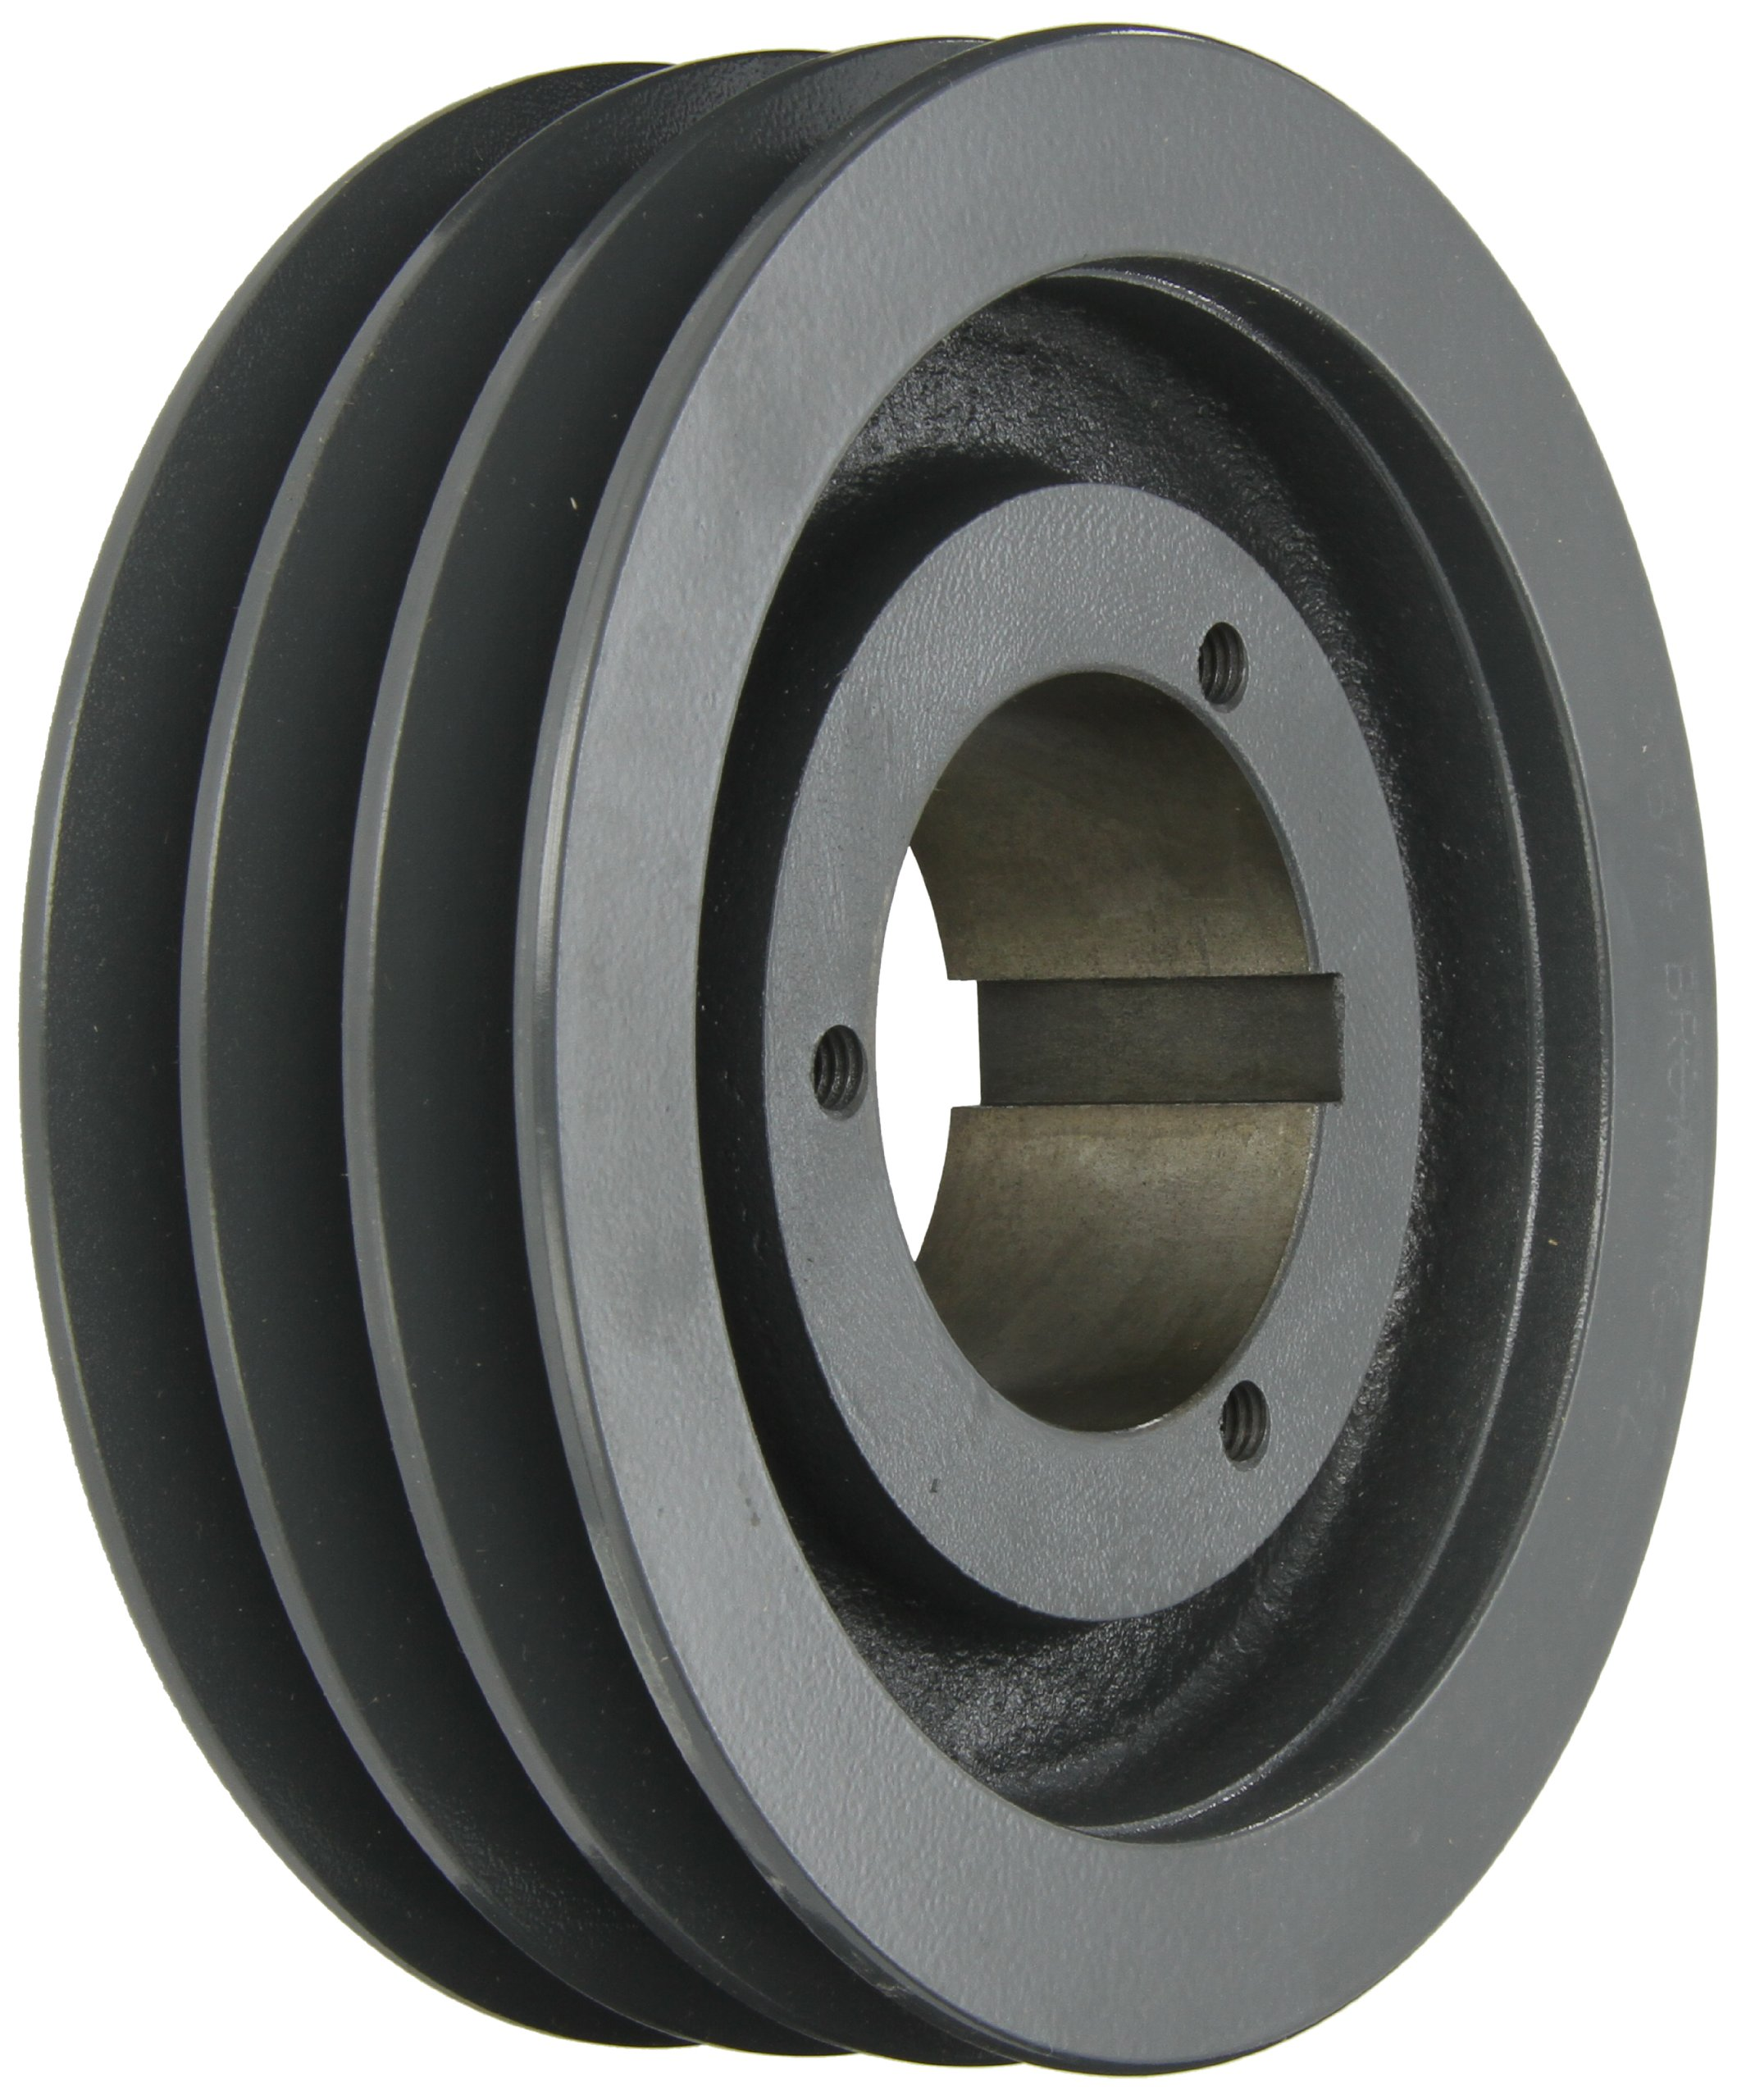 Browning 3TB74 Split Taper Sheave, Cast Iron, 3 Groove, A or B Belt, Uses Q1 Bushing